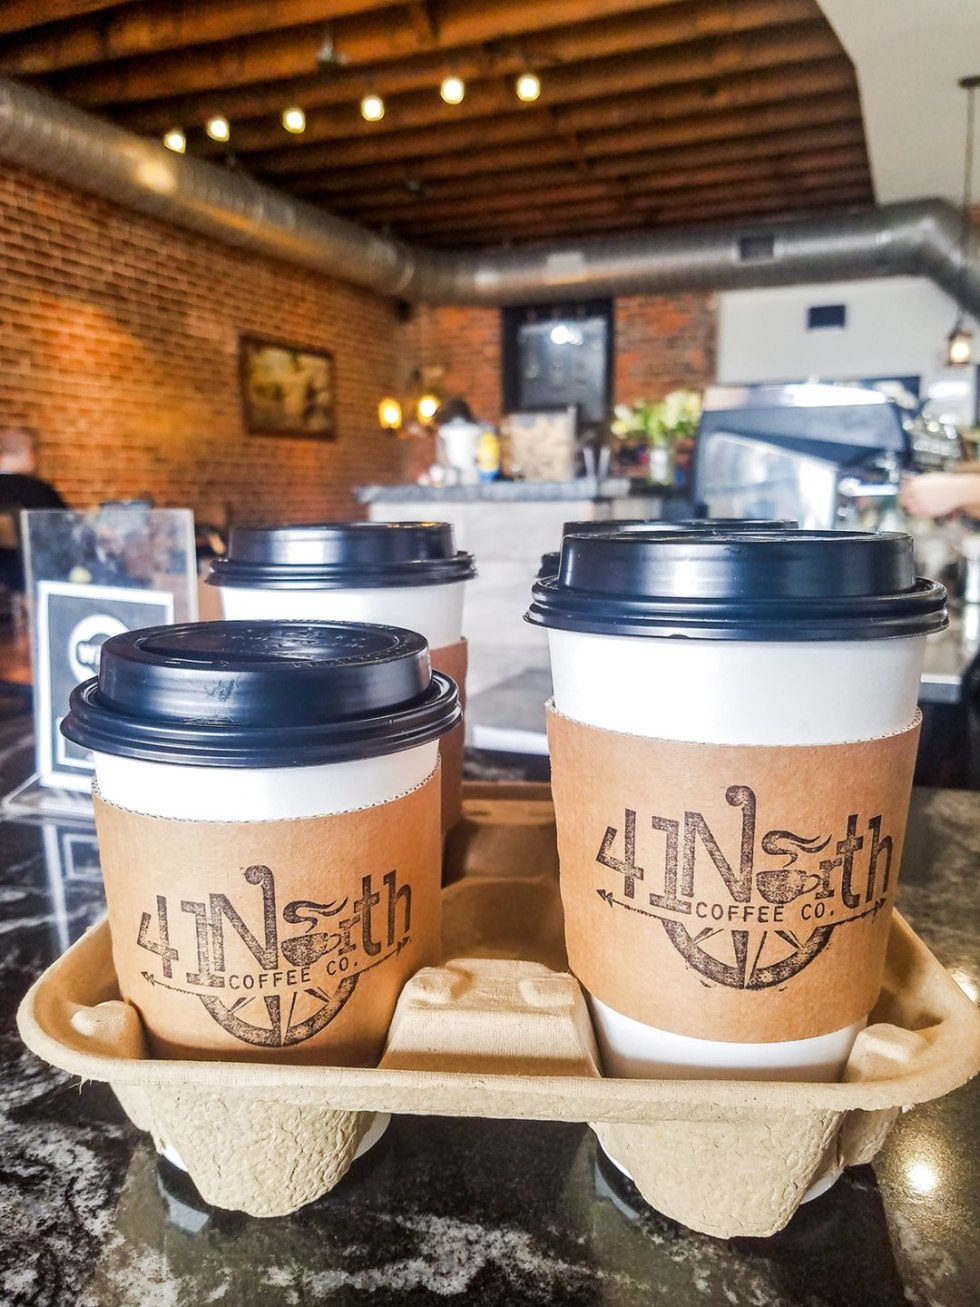 Top 15 Coffee Shops in Raleigh, NC - I'm Fixin' To - @mbg0112 | Best Coffee Shops in Raleigh NC featured by top NC blog, I'm Fixin' To: 41 Coffee Co